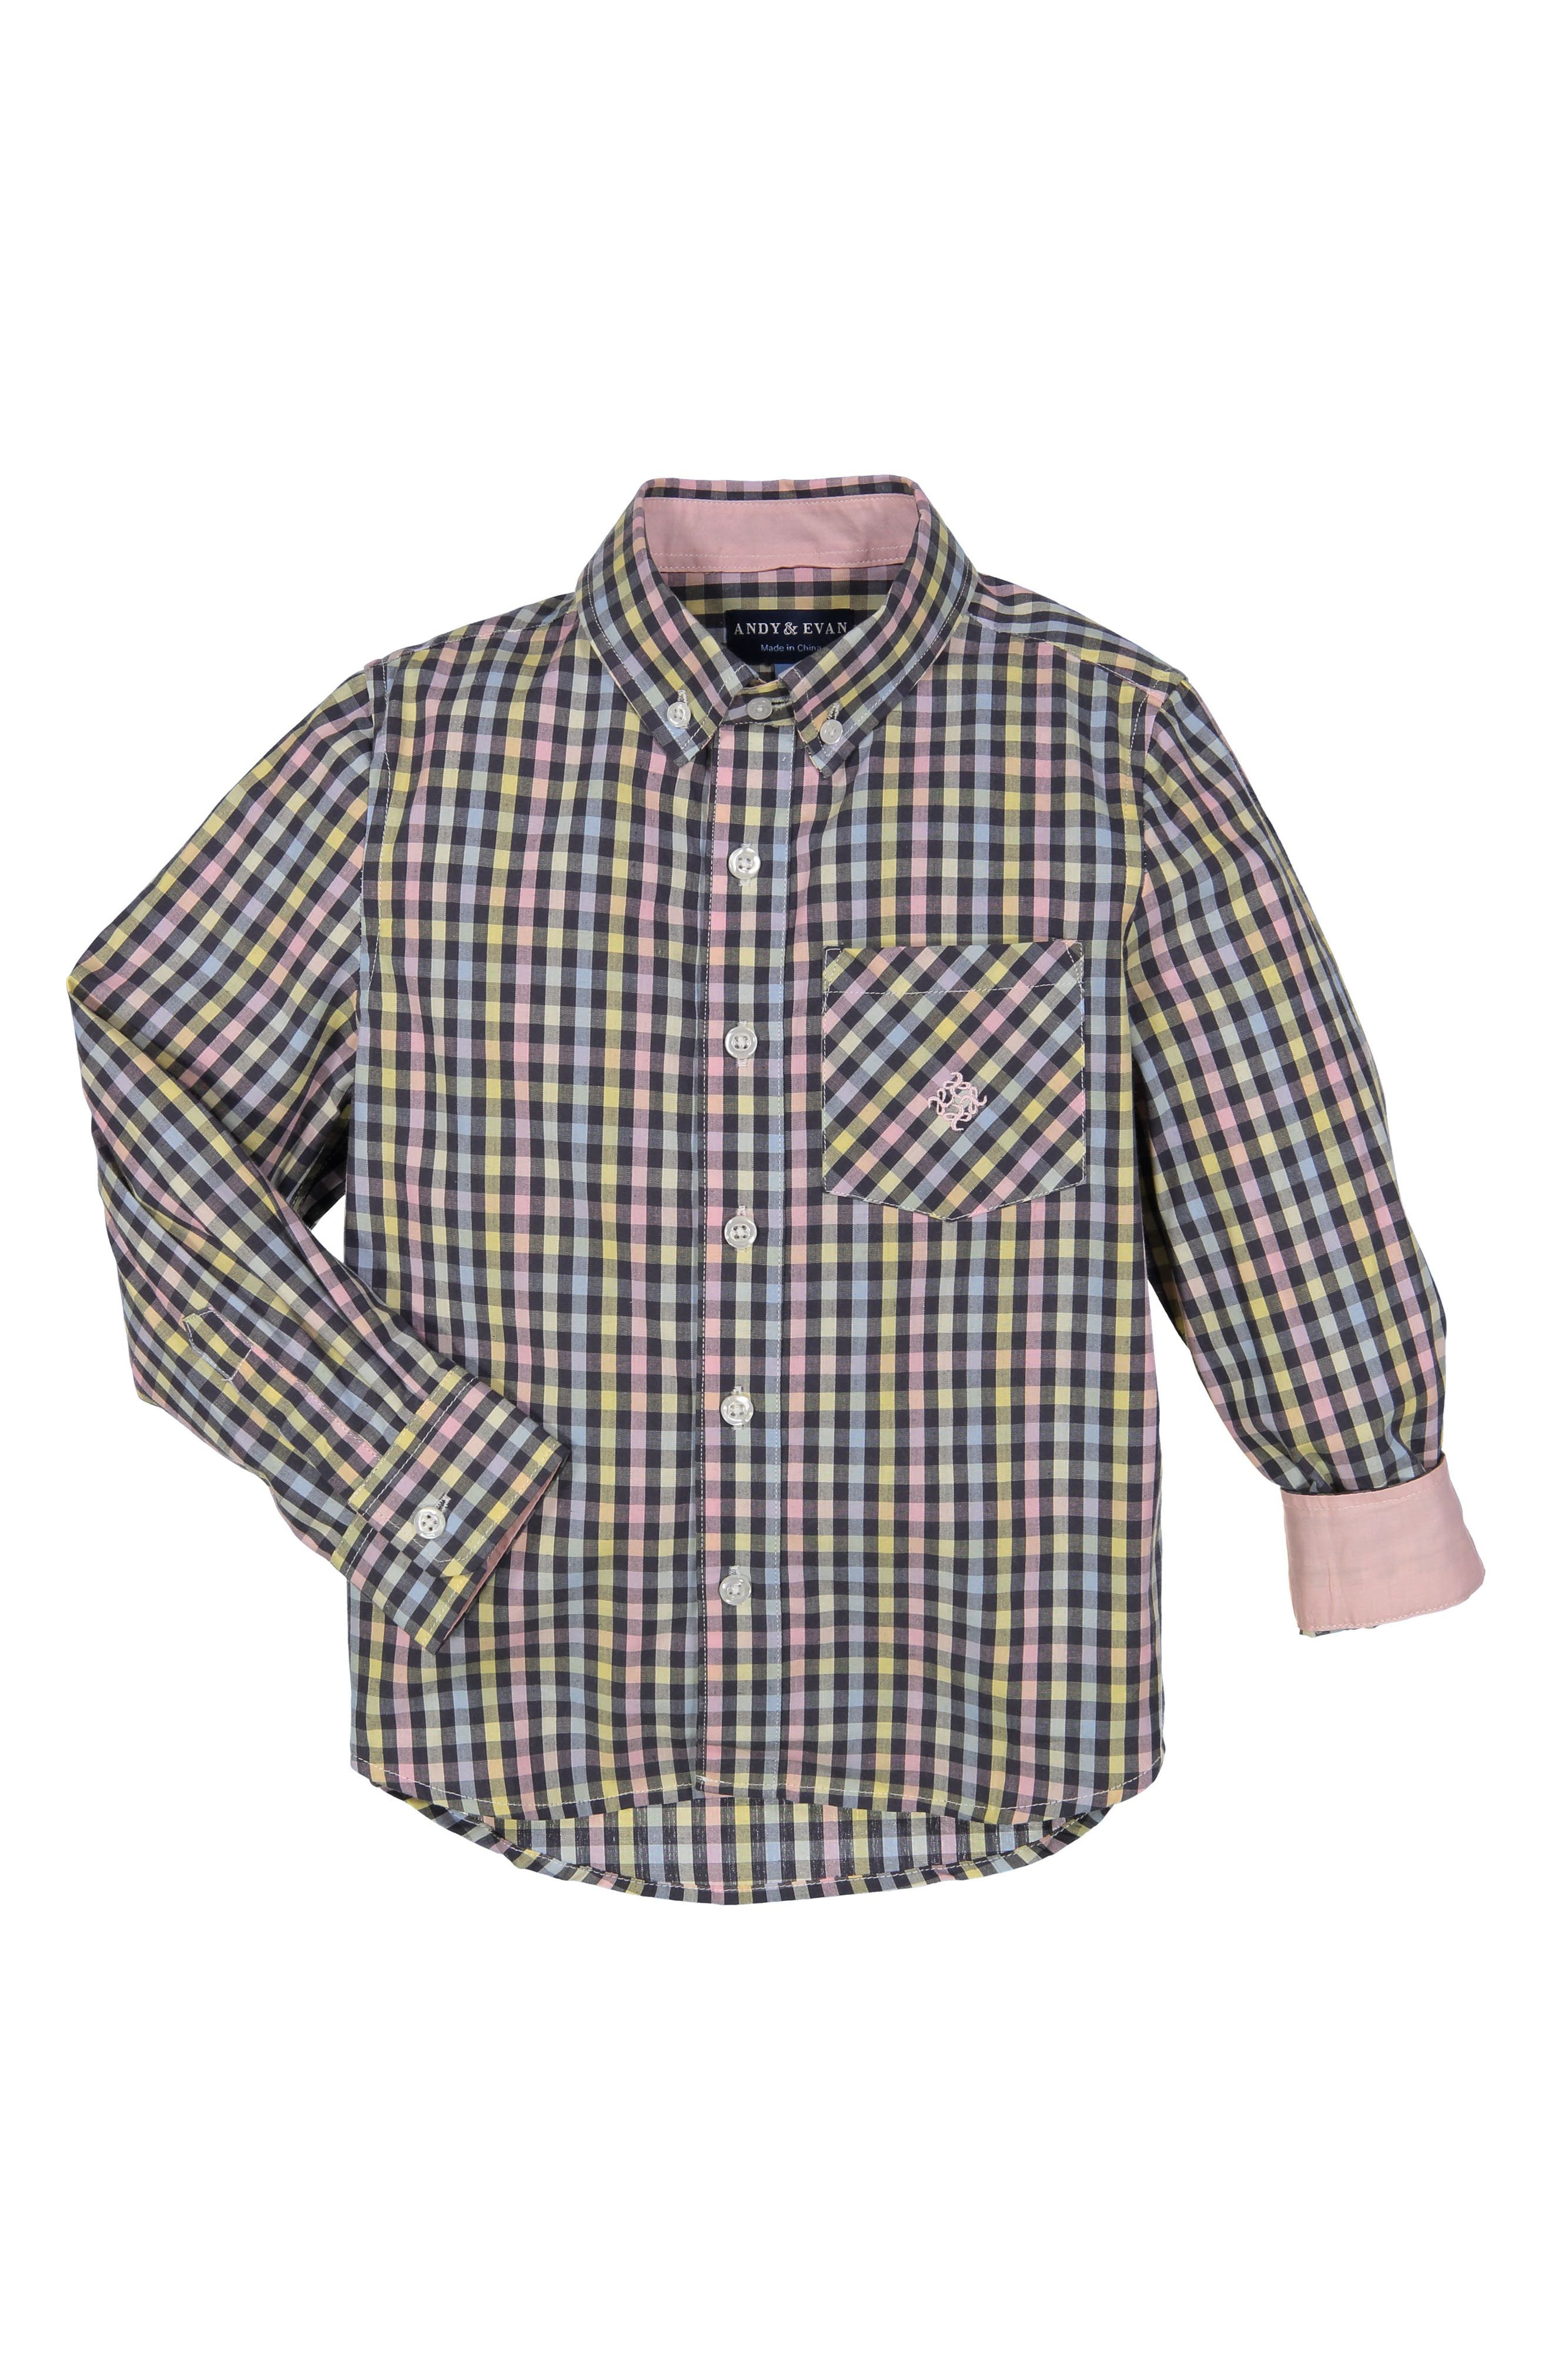 Andy & Evan Gingham Check Woven Shirt (Toddler Boys & Little Boys)